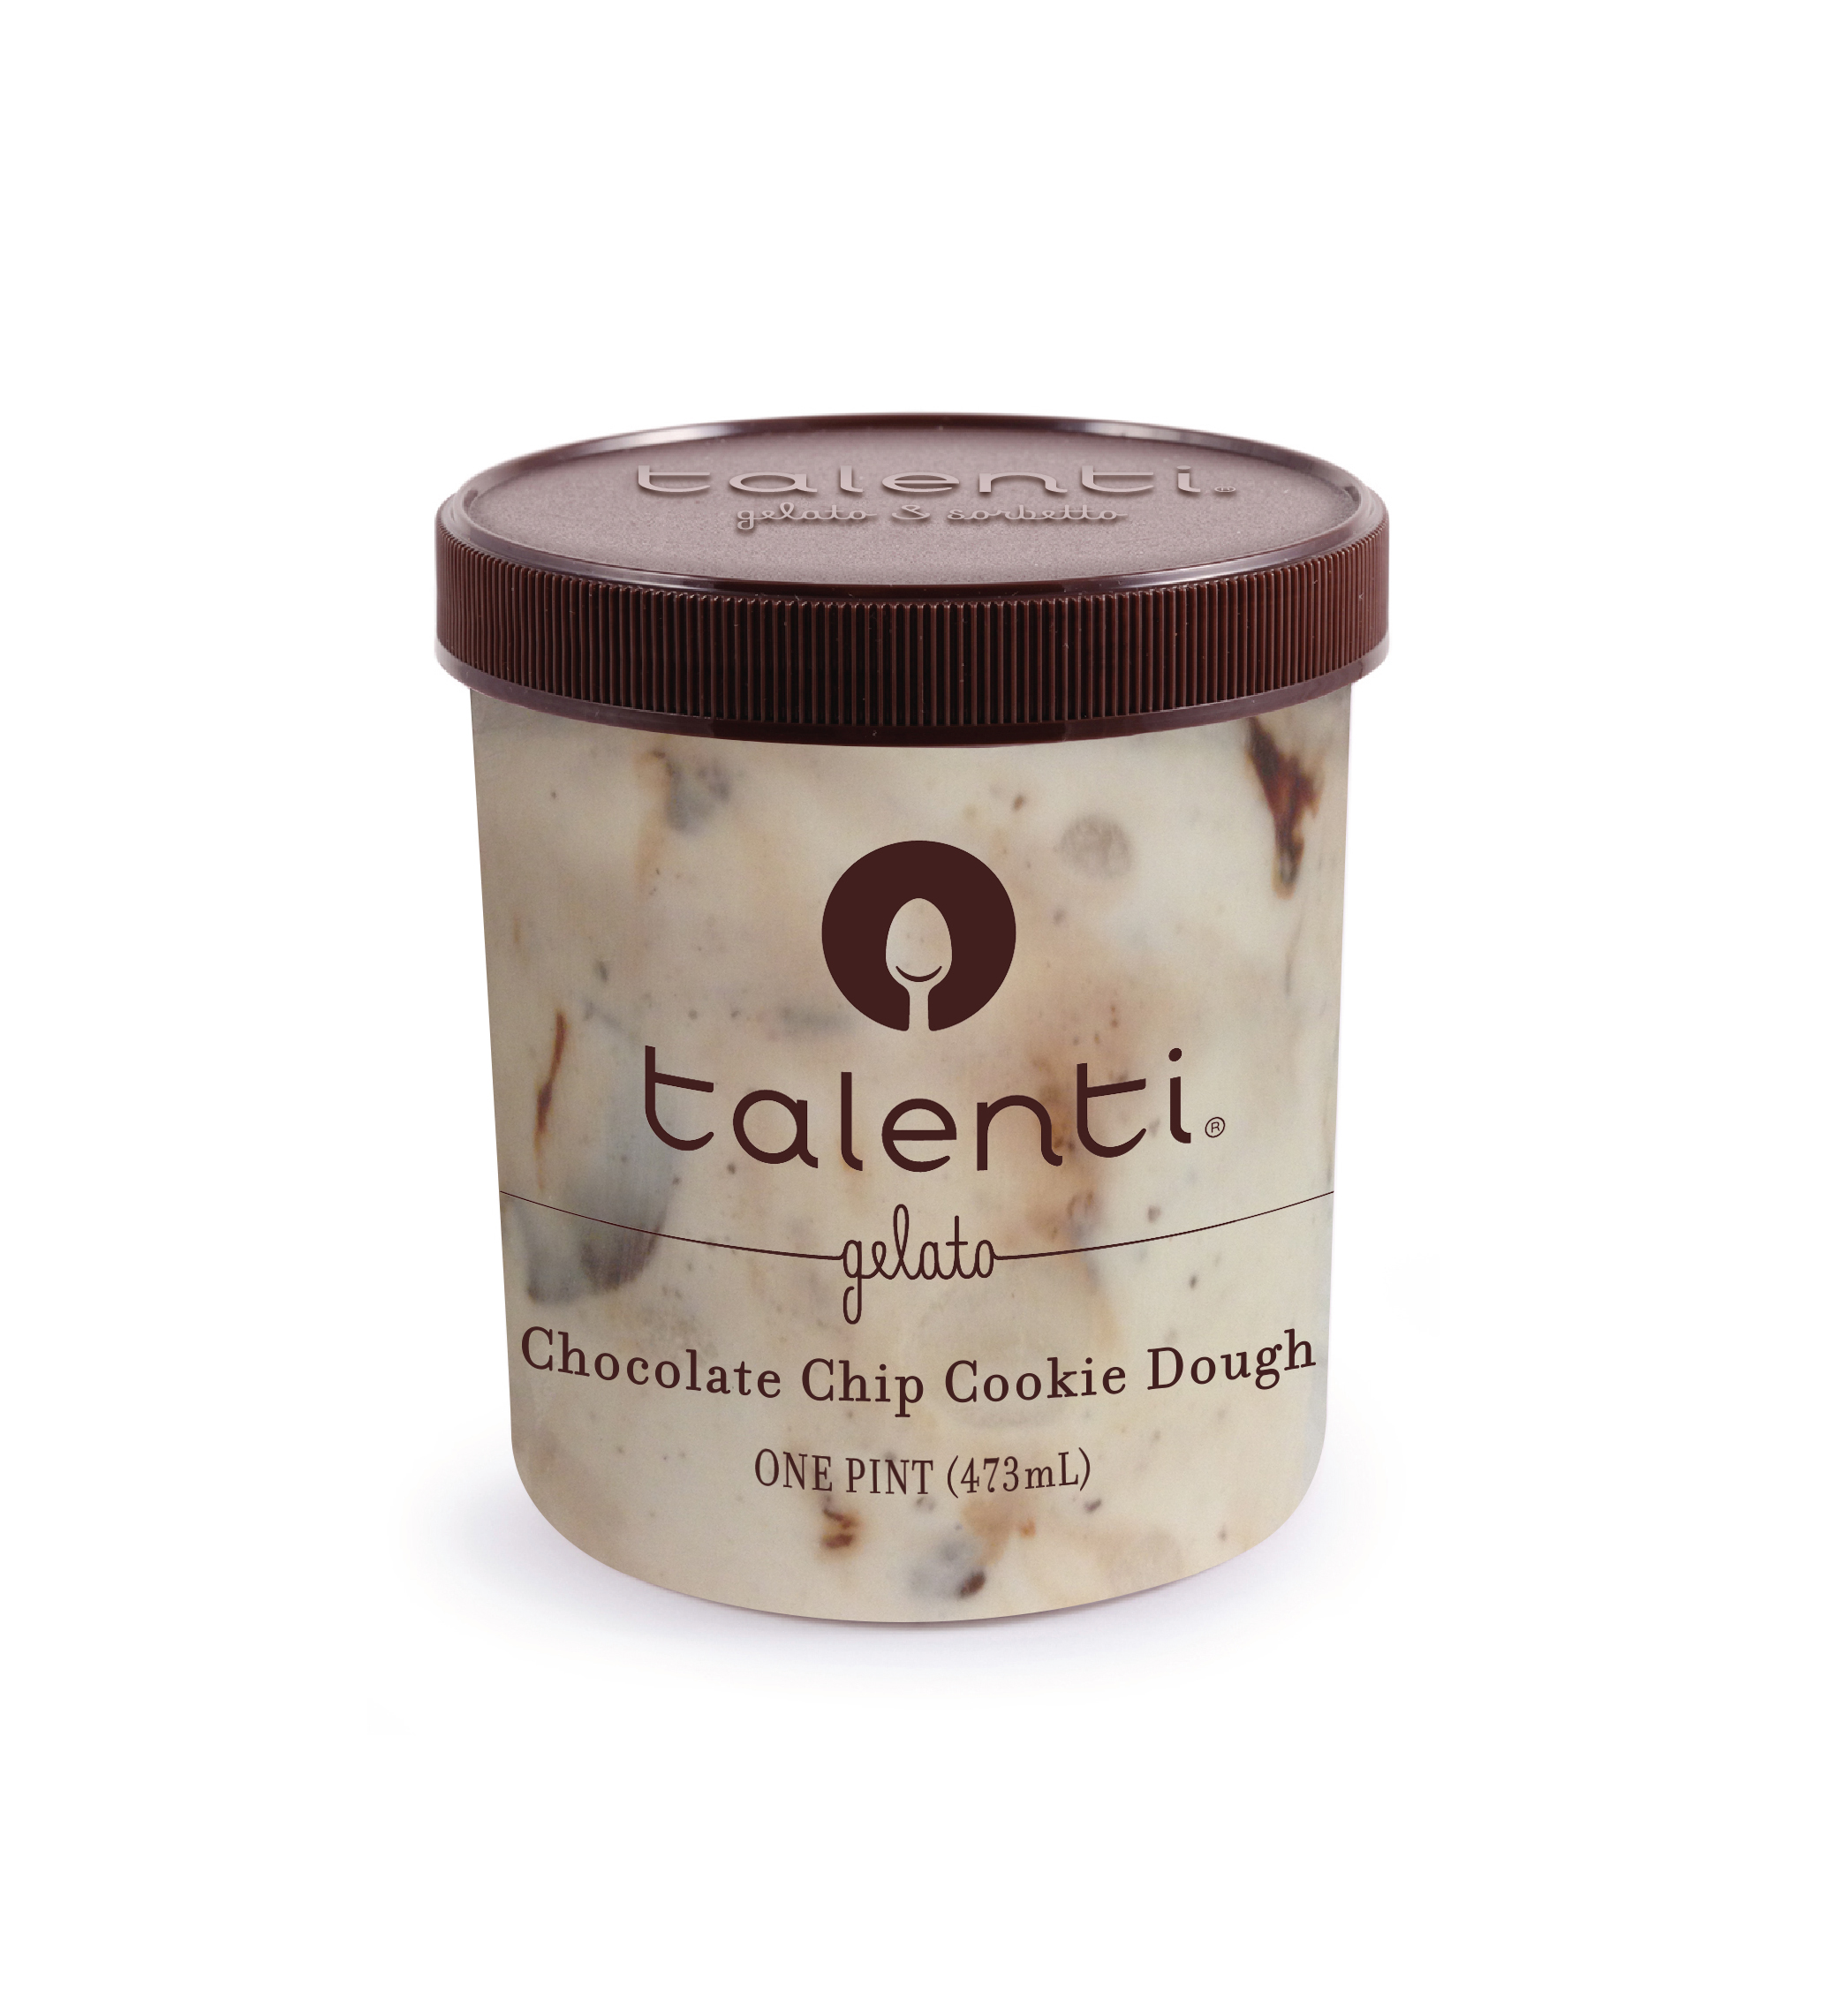 http://www.multivu.com/players/English/7455351-talenti-gelato-sorbetto-new-flavors/gallery/image/a5569a4d-ff17-4527-9d17-74e2a28d25c3.HR.jpg